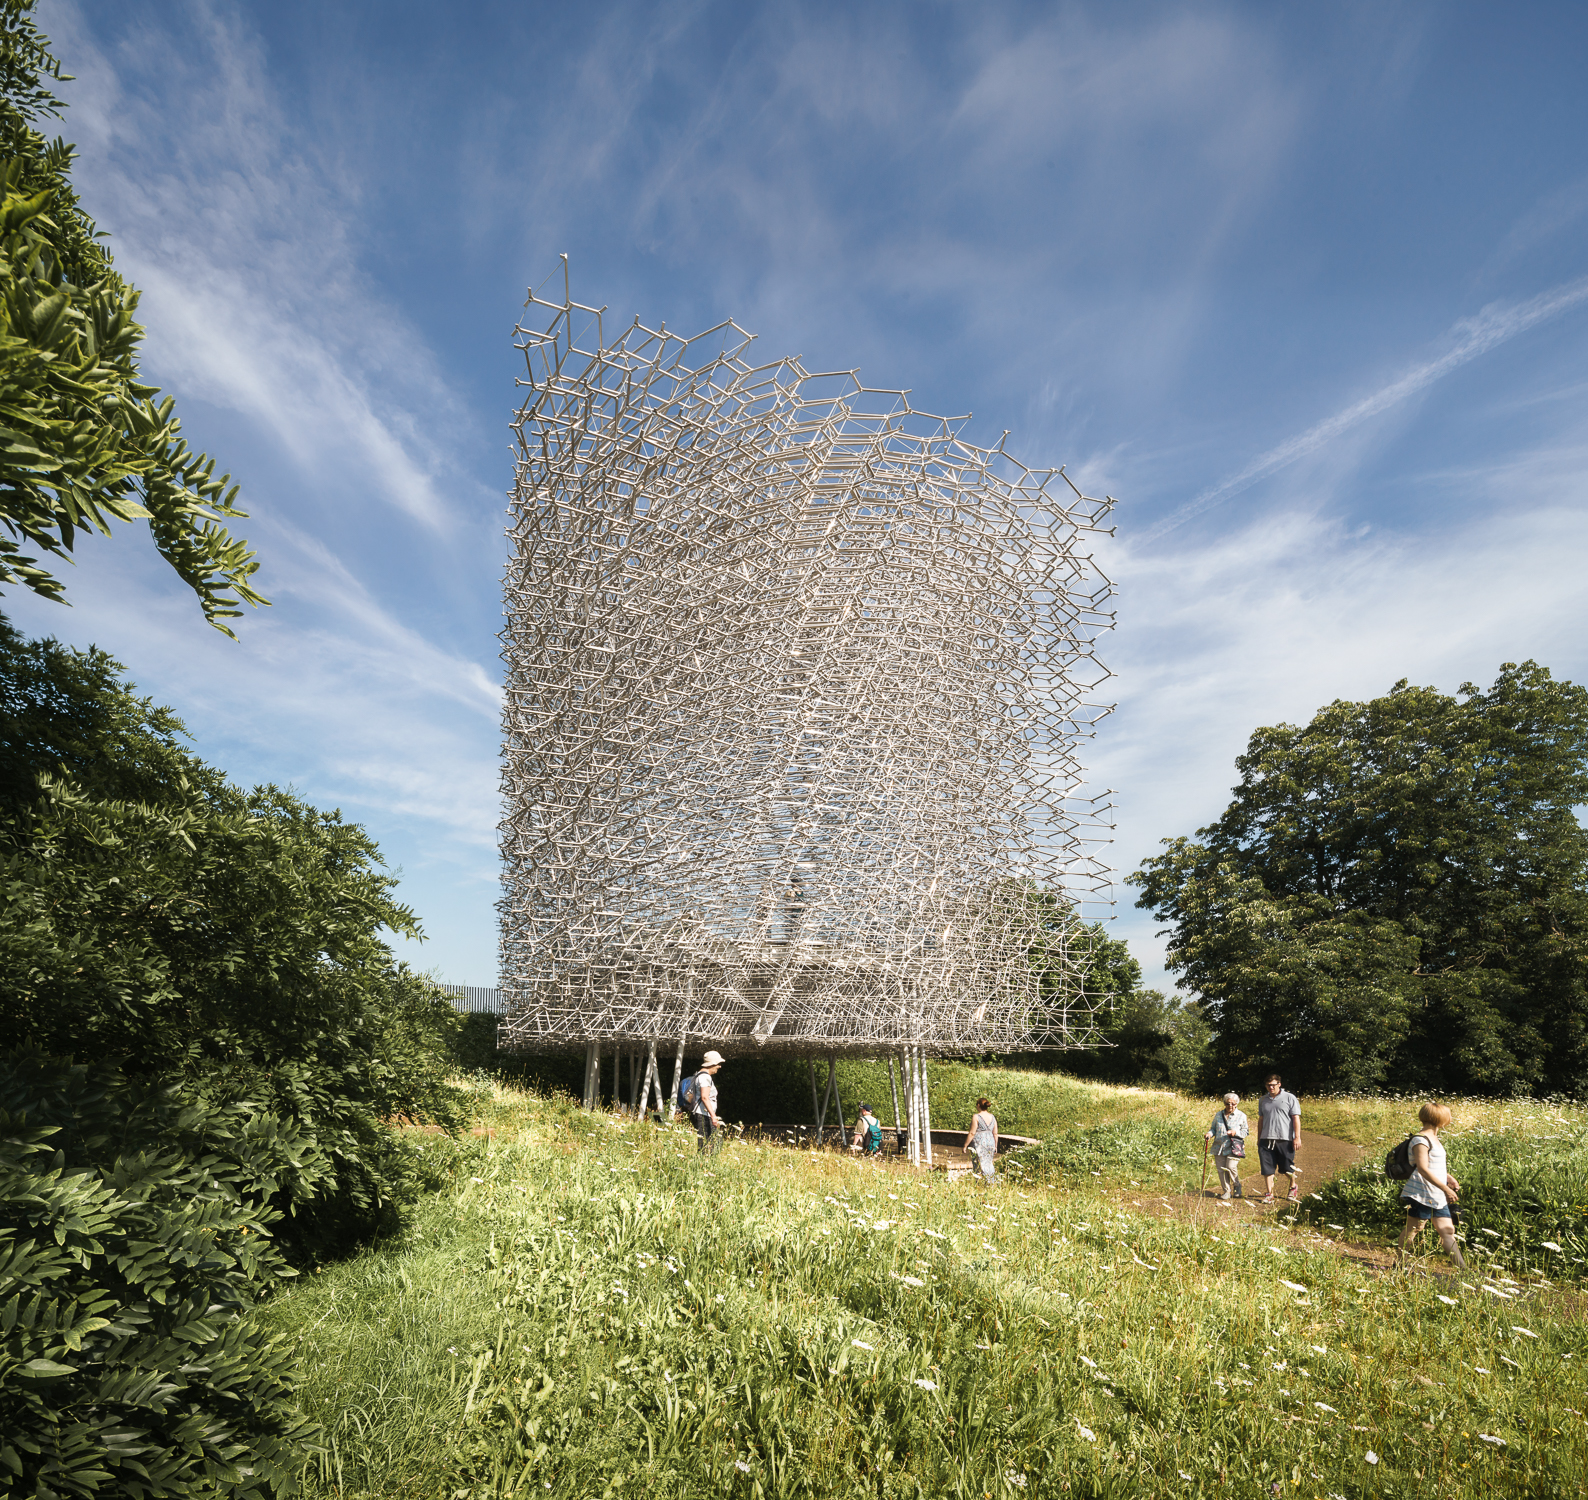 Through the meadow at  The Hive, Kew Gardens. Mark Hadden Architecture Photographer